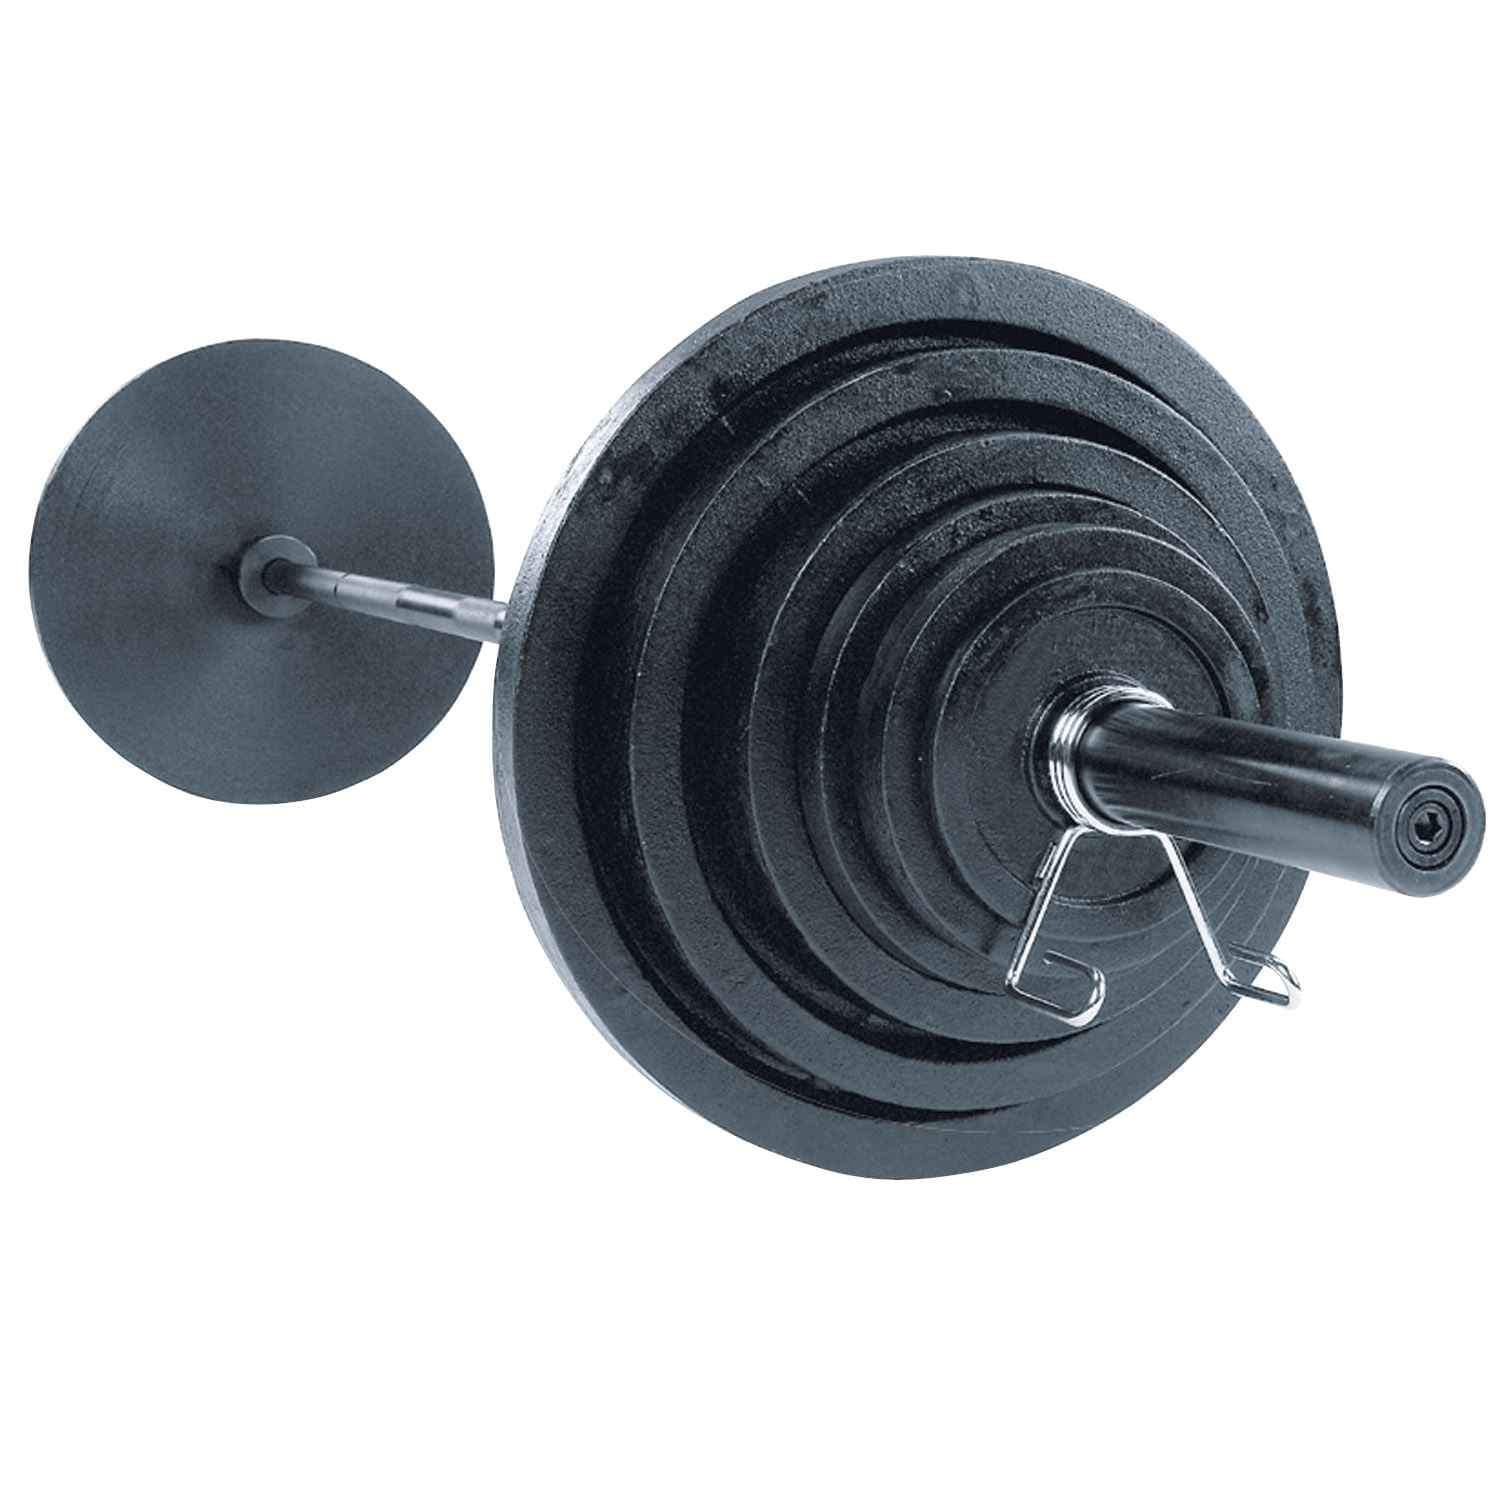 Body-Solid Olympic Cast Iron Plate Set plate Body-Solid Iron 255 lbs